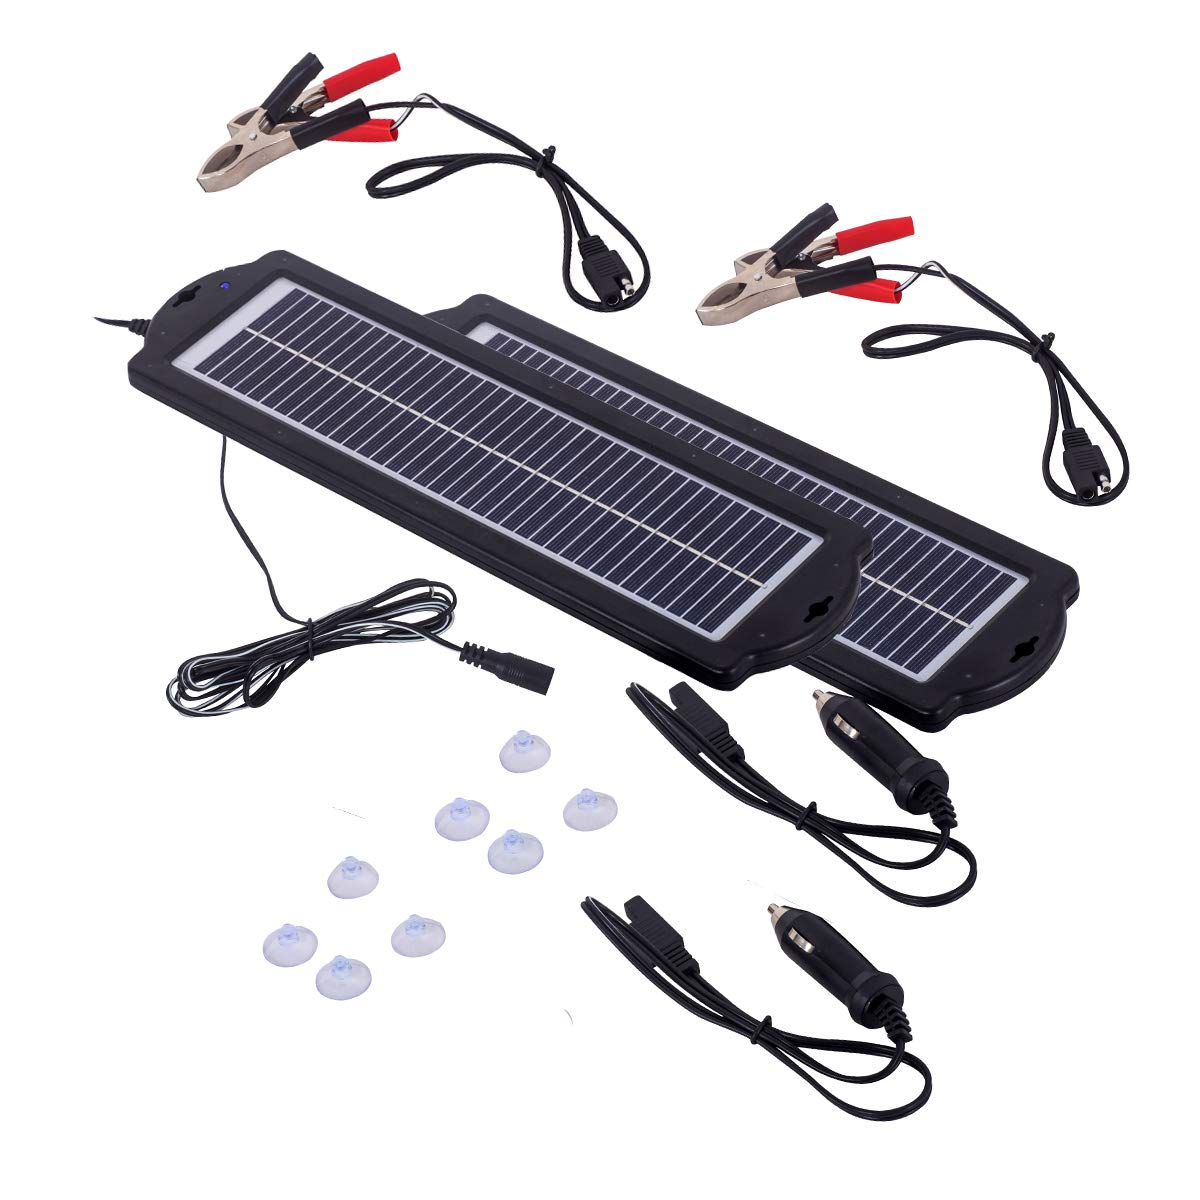 Betop-camp 3W 12V Car Battery Trickle Charger (2 Pairs) Waterproof Portable High Conversion Mono Solar Panel with Cigarette Lighter Plug,Battery Charging Clip Line,Suction Cups for Rv Motorcycle Boat